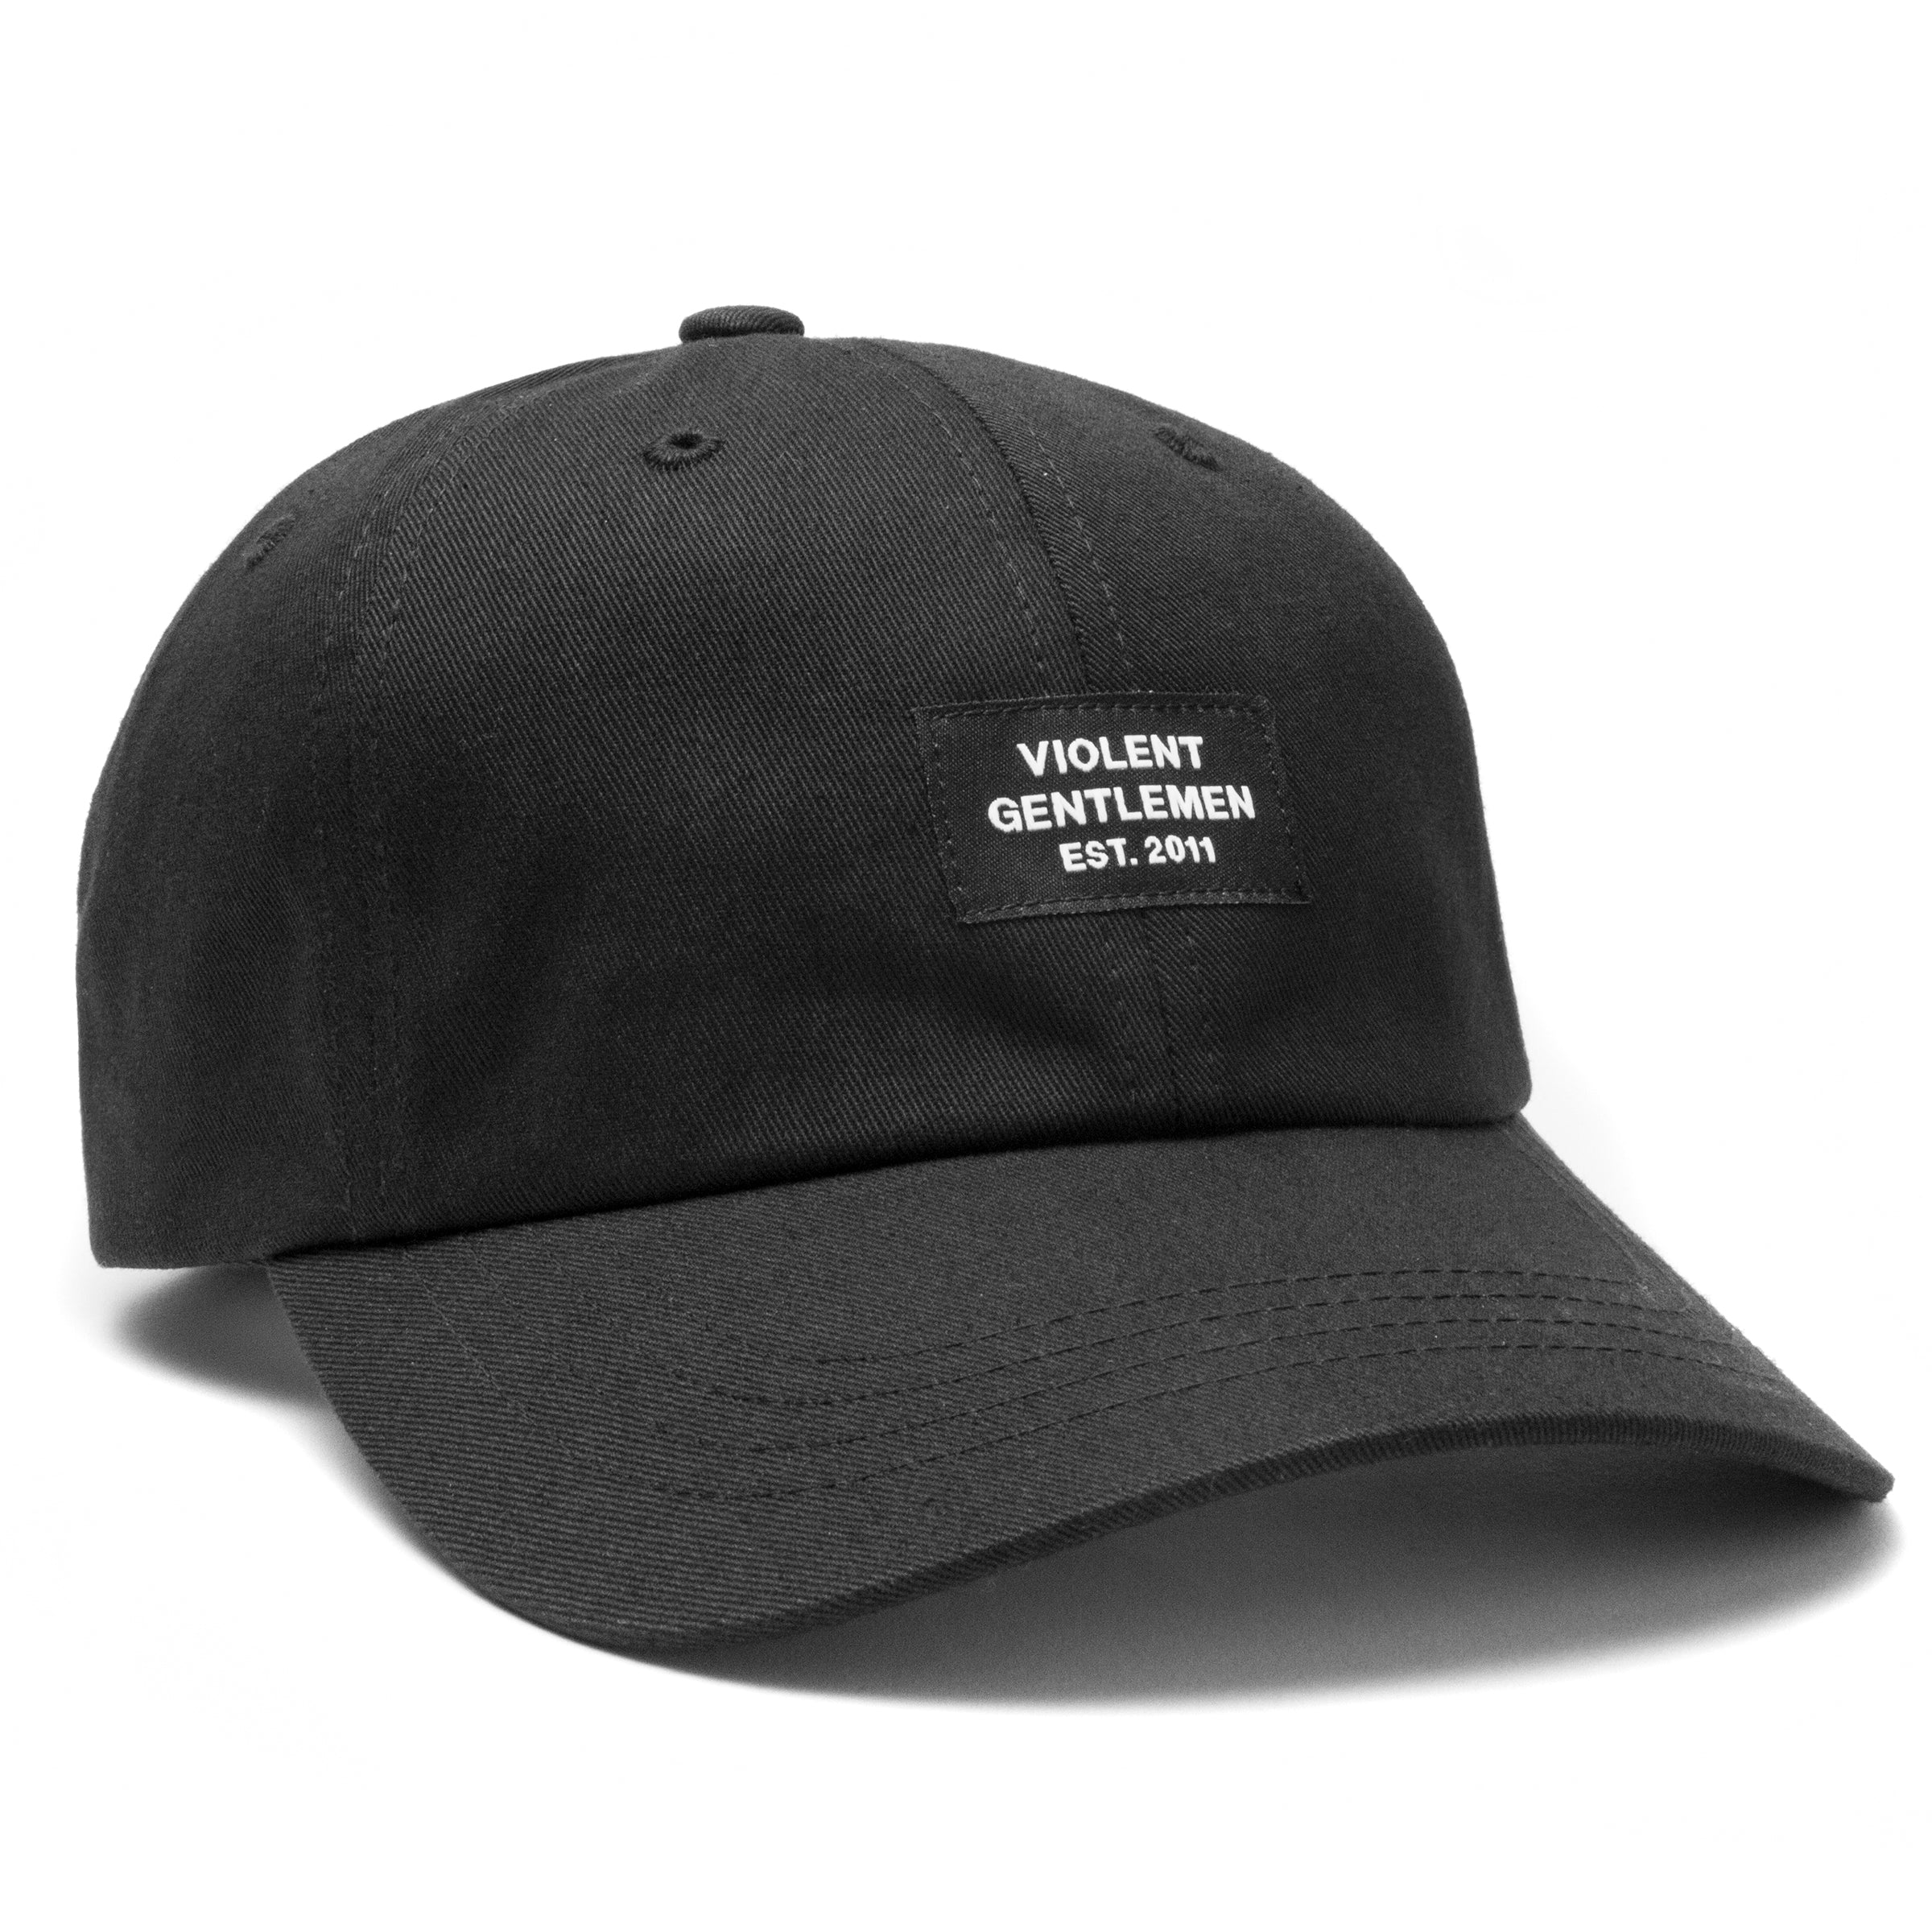 Lemieux Dad Hat - Black - Hats - Violent Gentlemen 342fec1b730